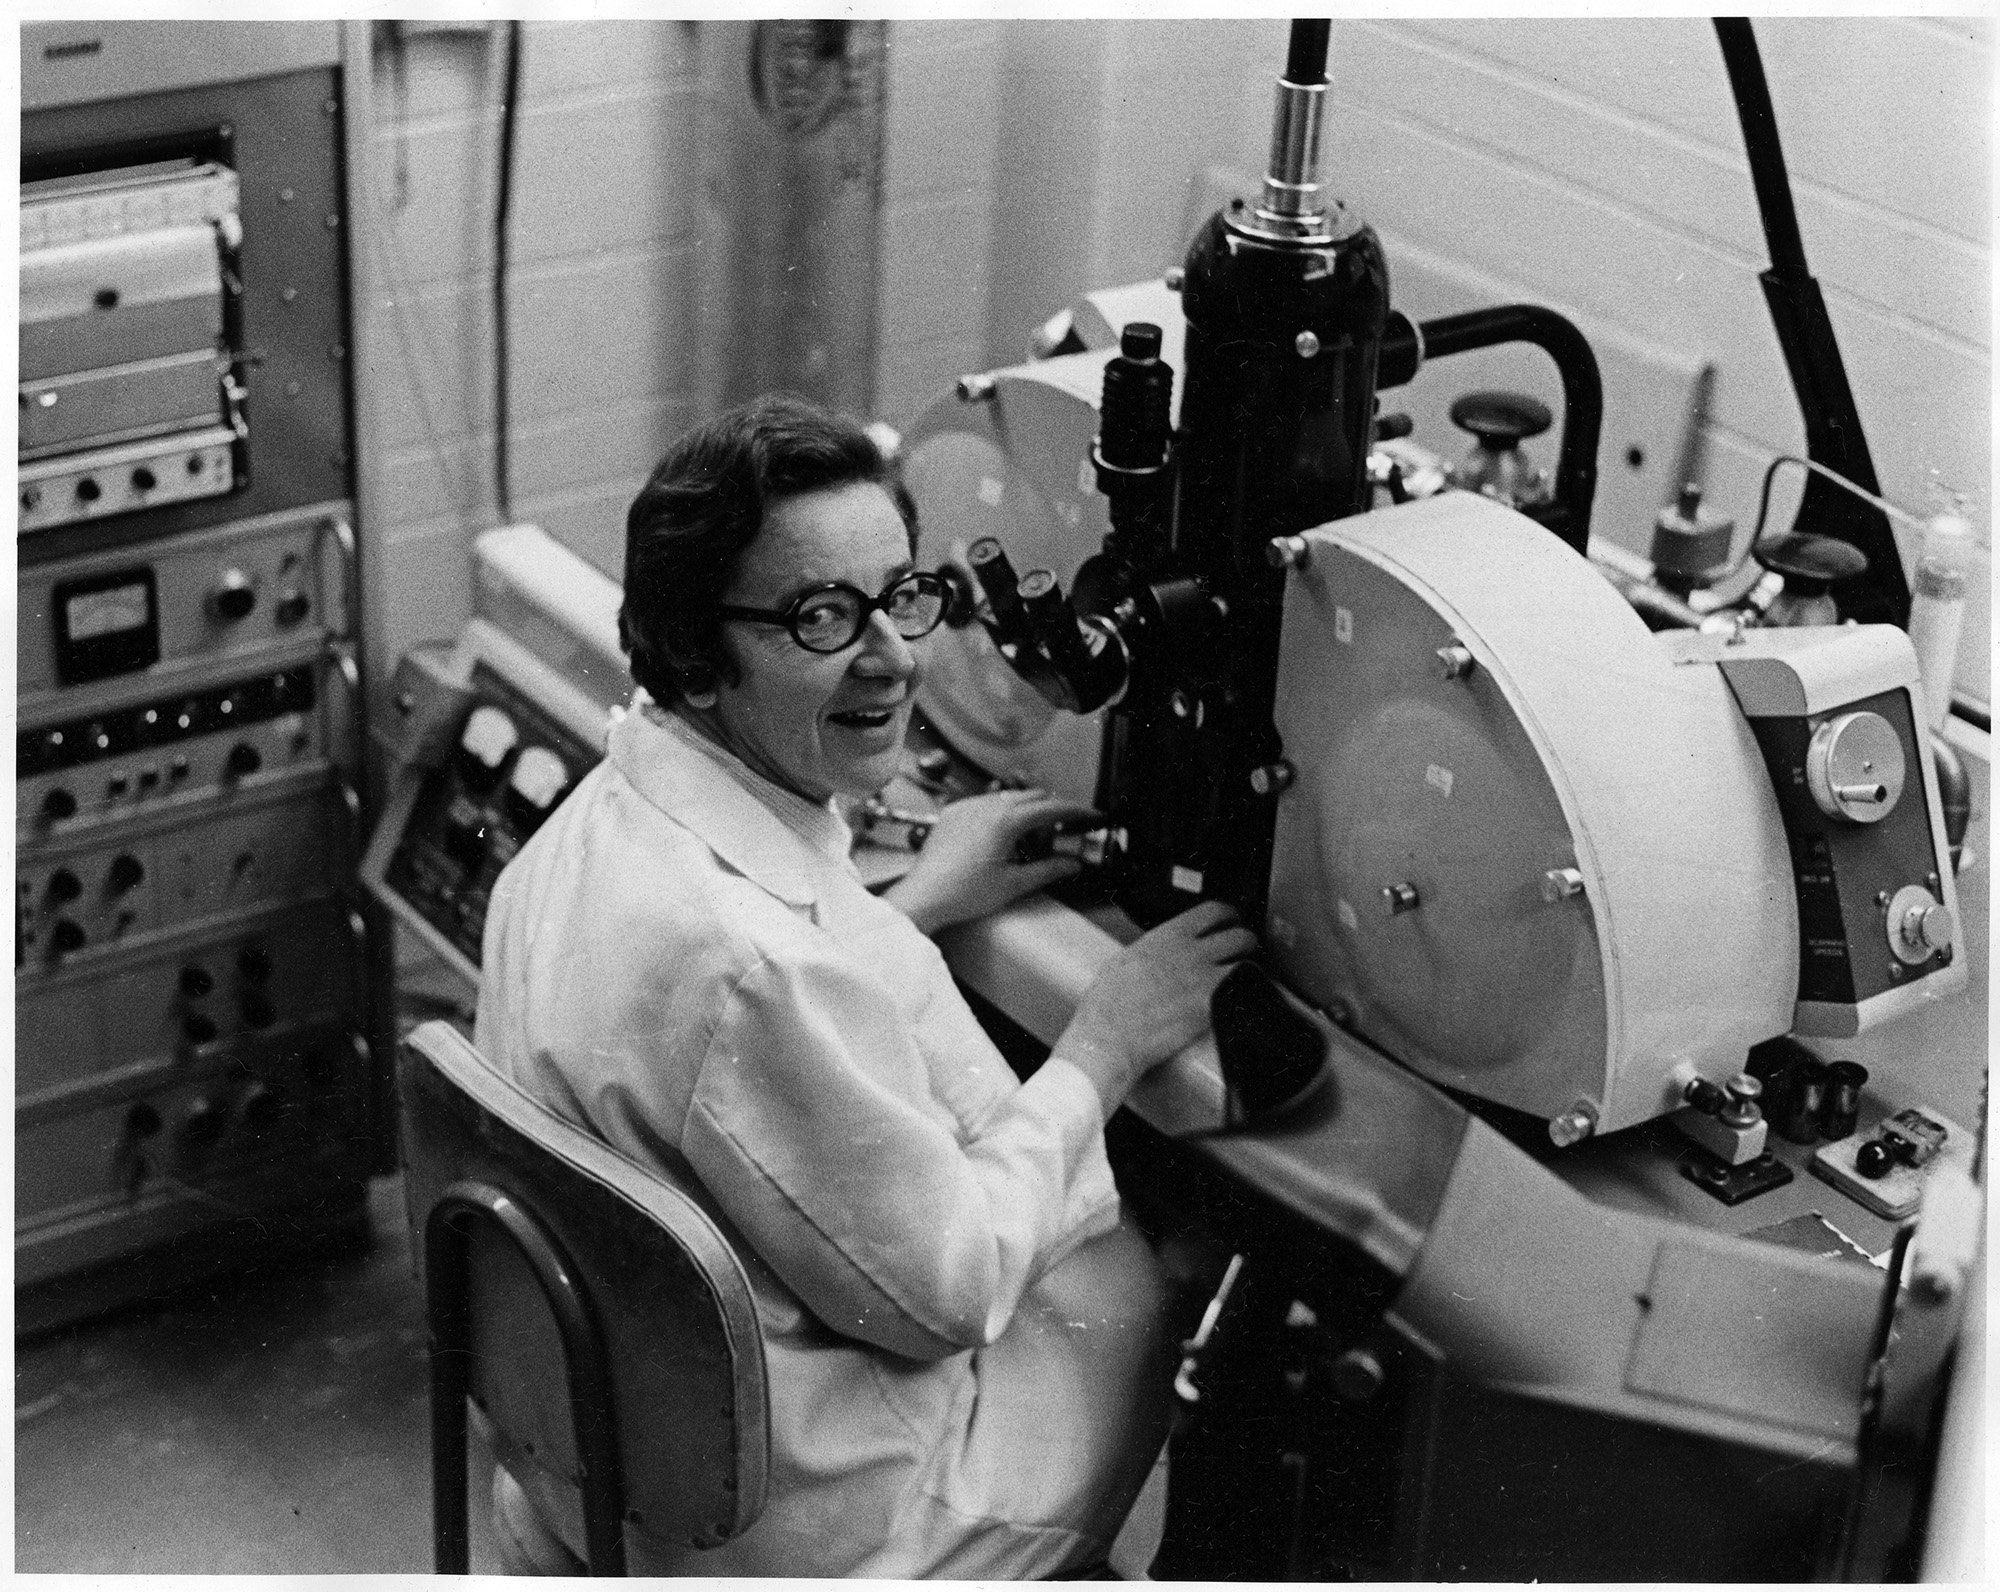 http://fisher.library.utoronto.ca/sites/fisher.library.utoronto.ca/files/franklin%20%28resize%29.jpg Ursula Franklin at work